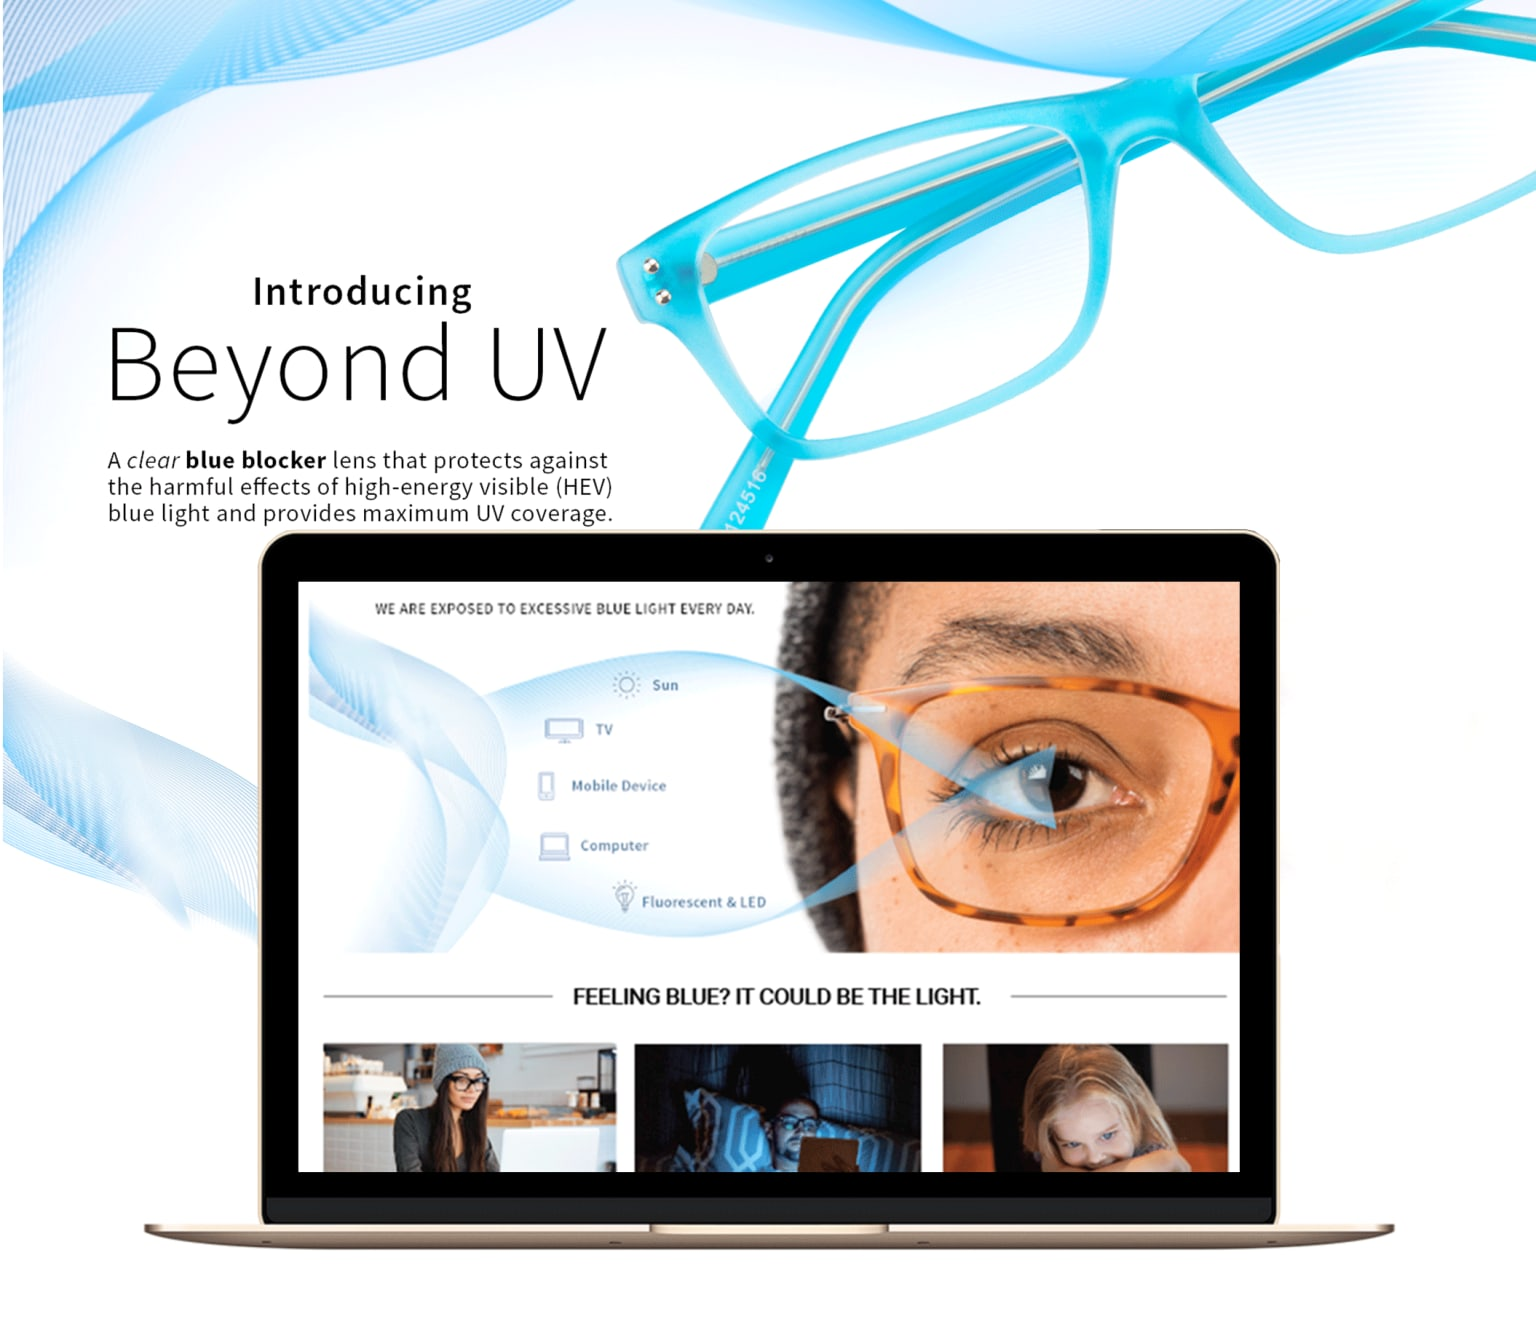 BEYOND UV BLUE BLOCKER Landing page design